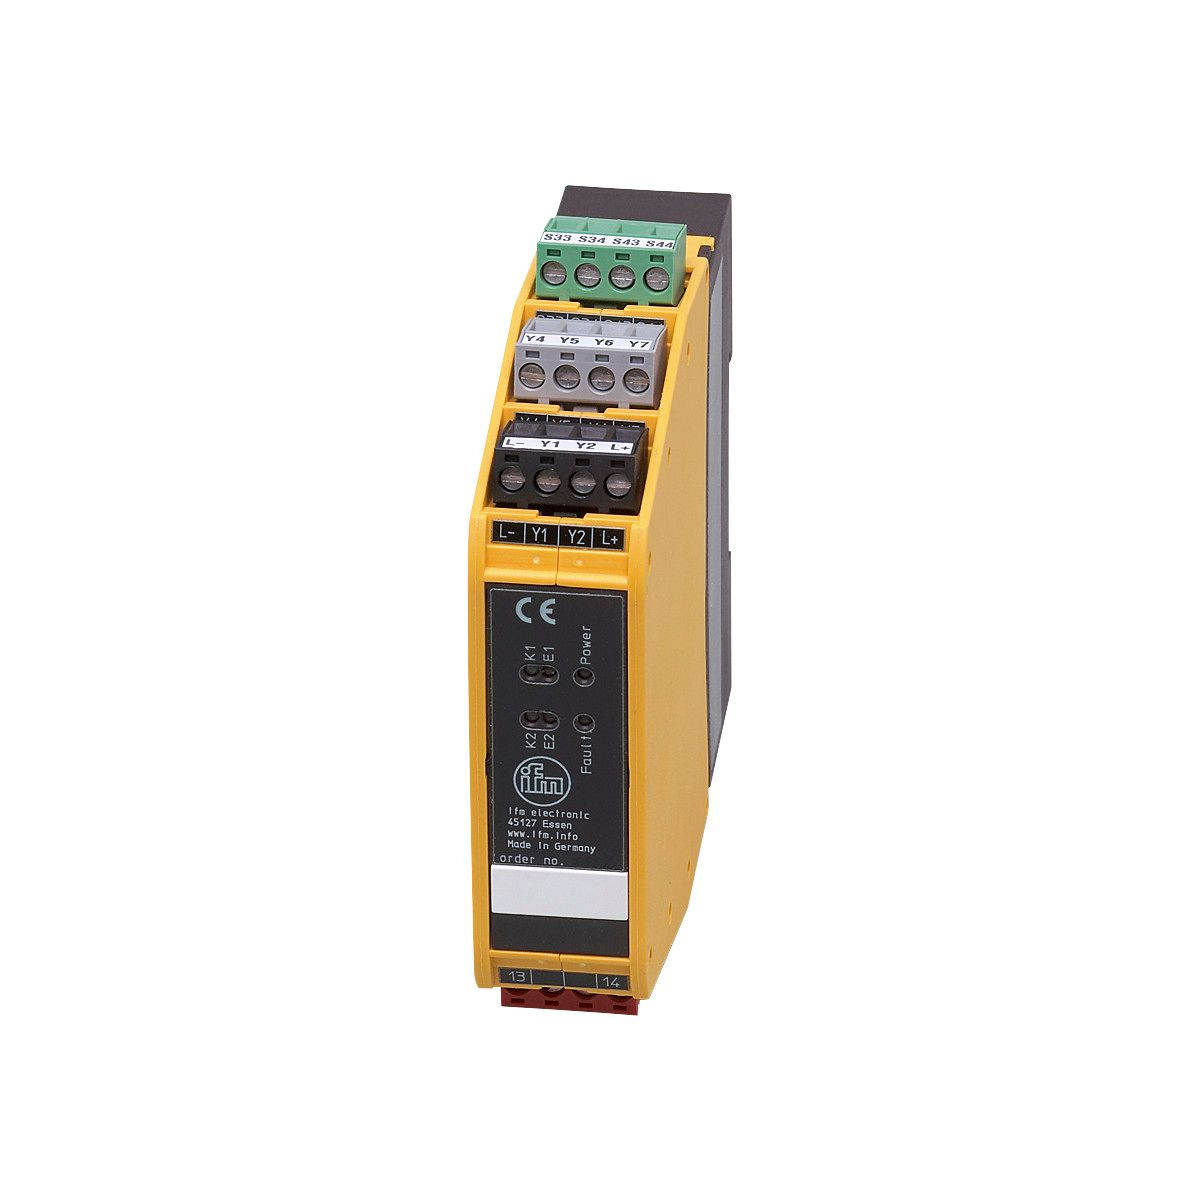 G1501S - Safety relay - ifm electronic